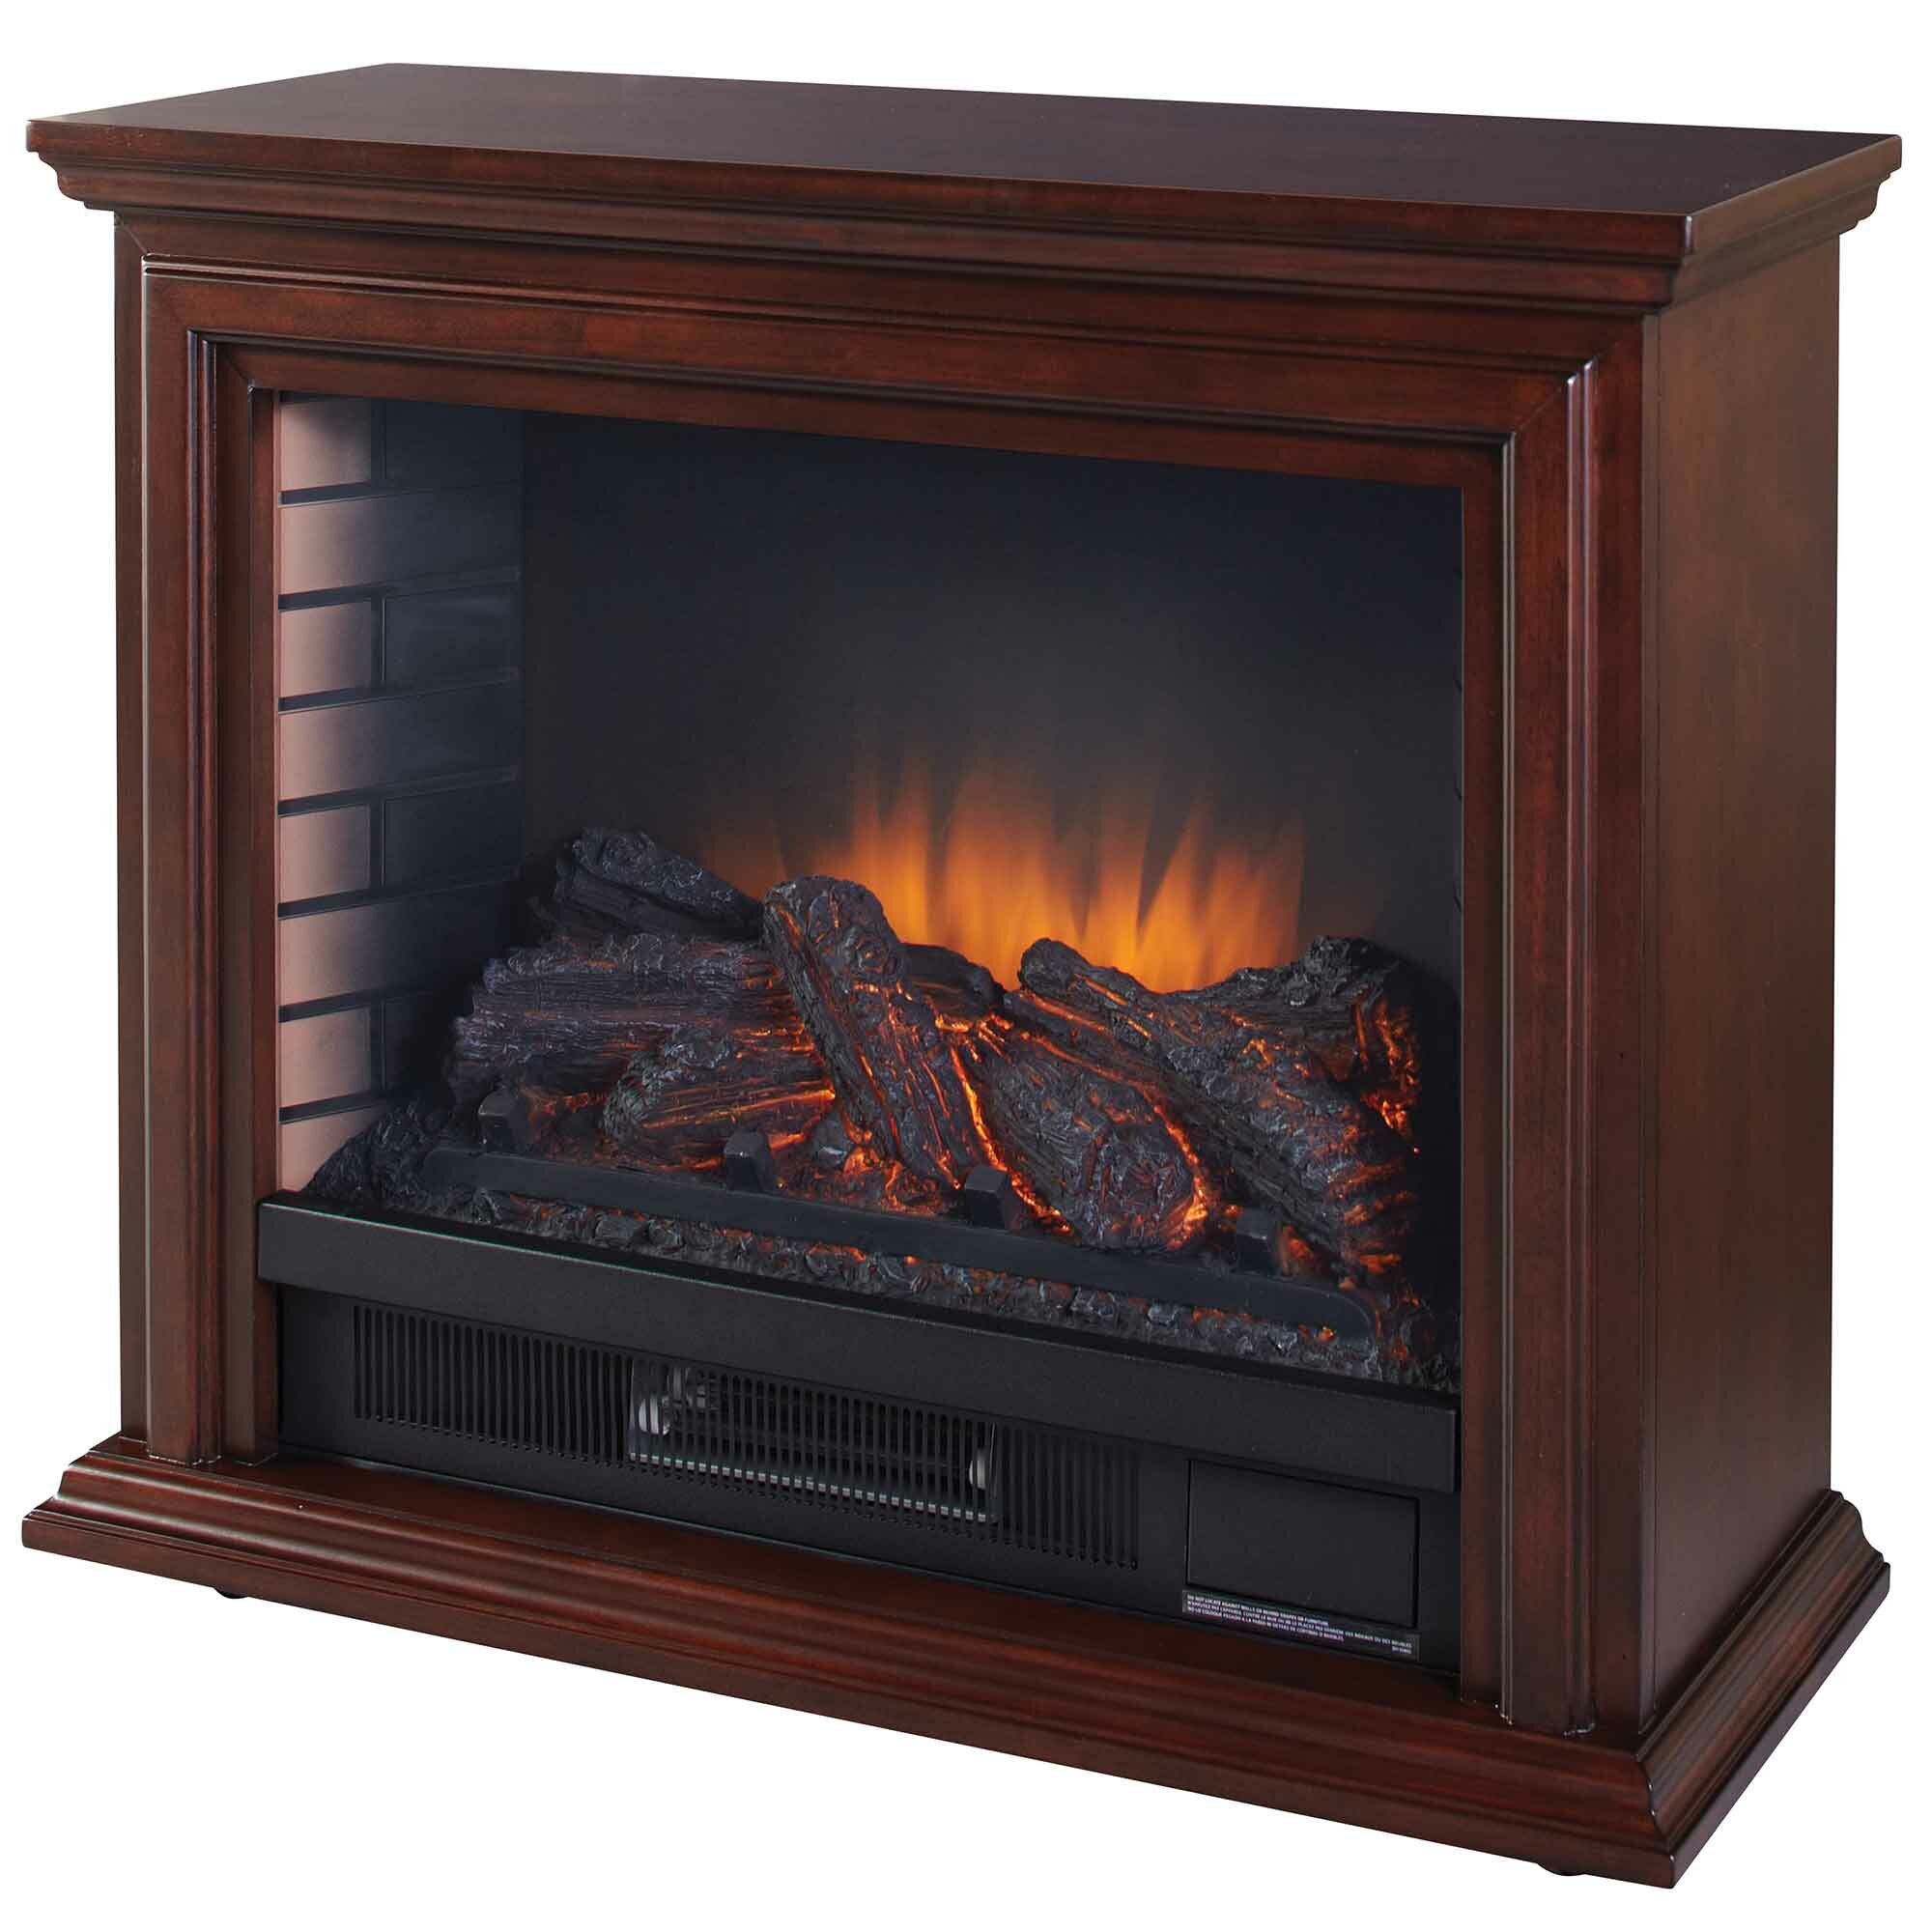 Pleasant Hearth: Pleasant Hearth Mobile Electric Fireplace & Reviews